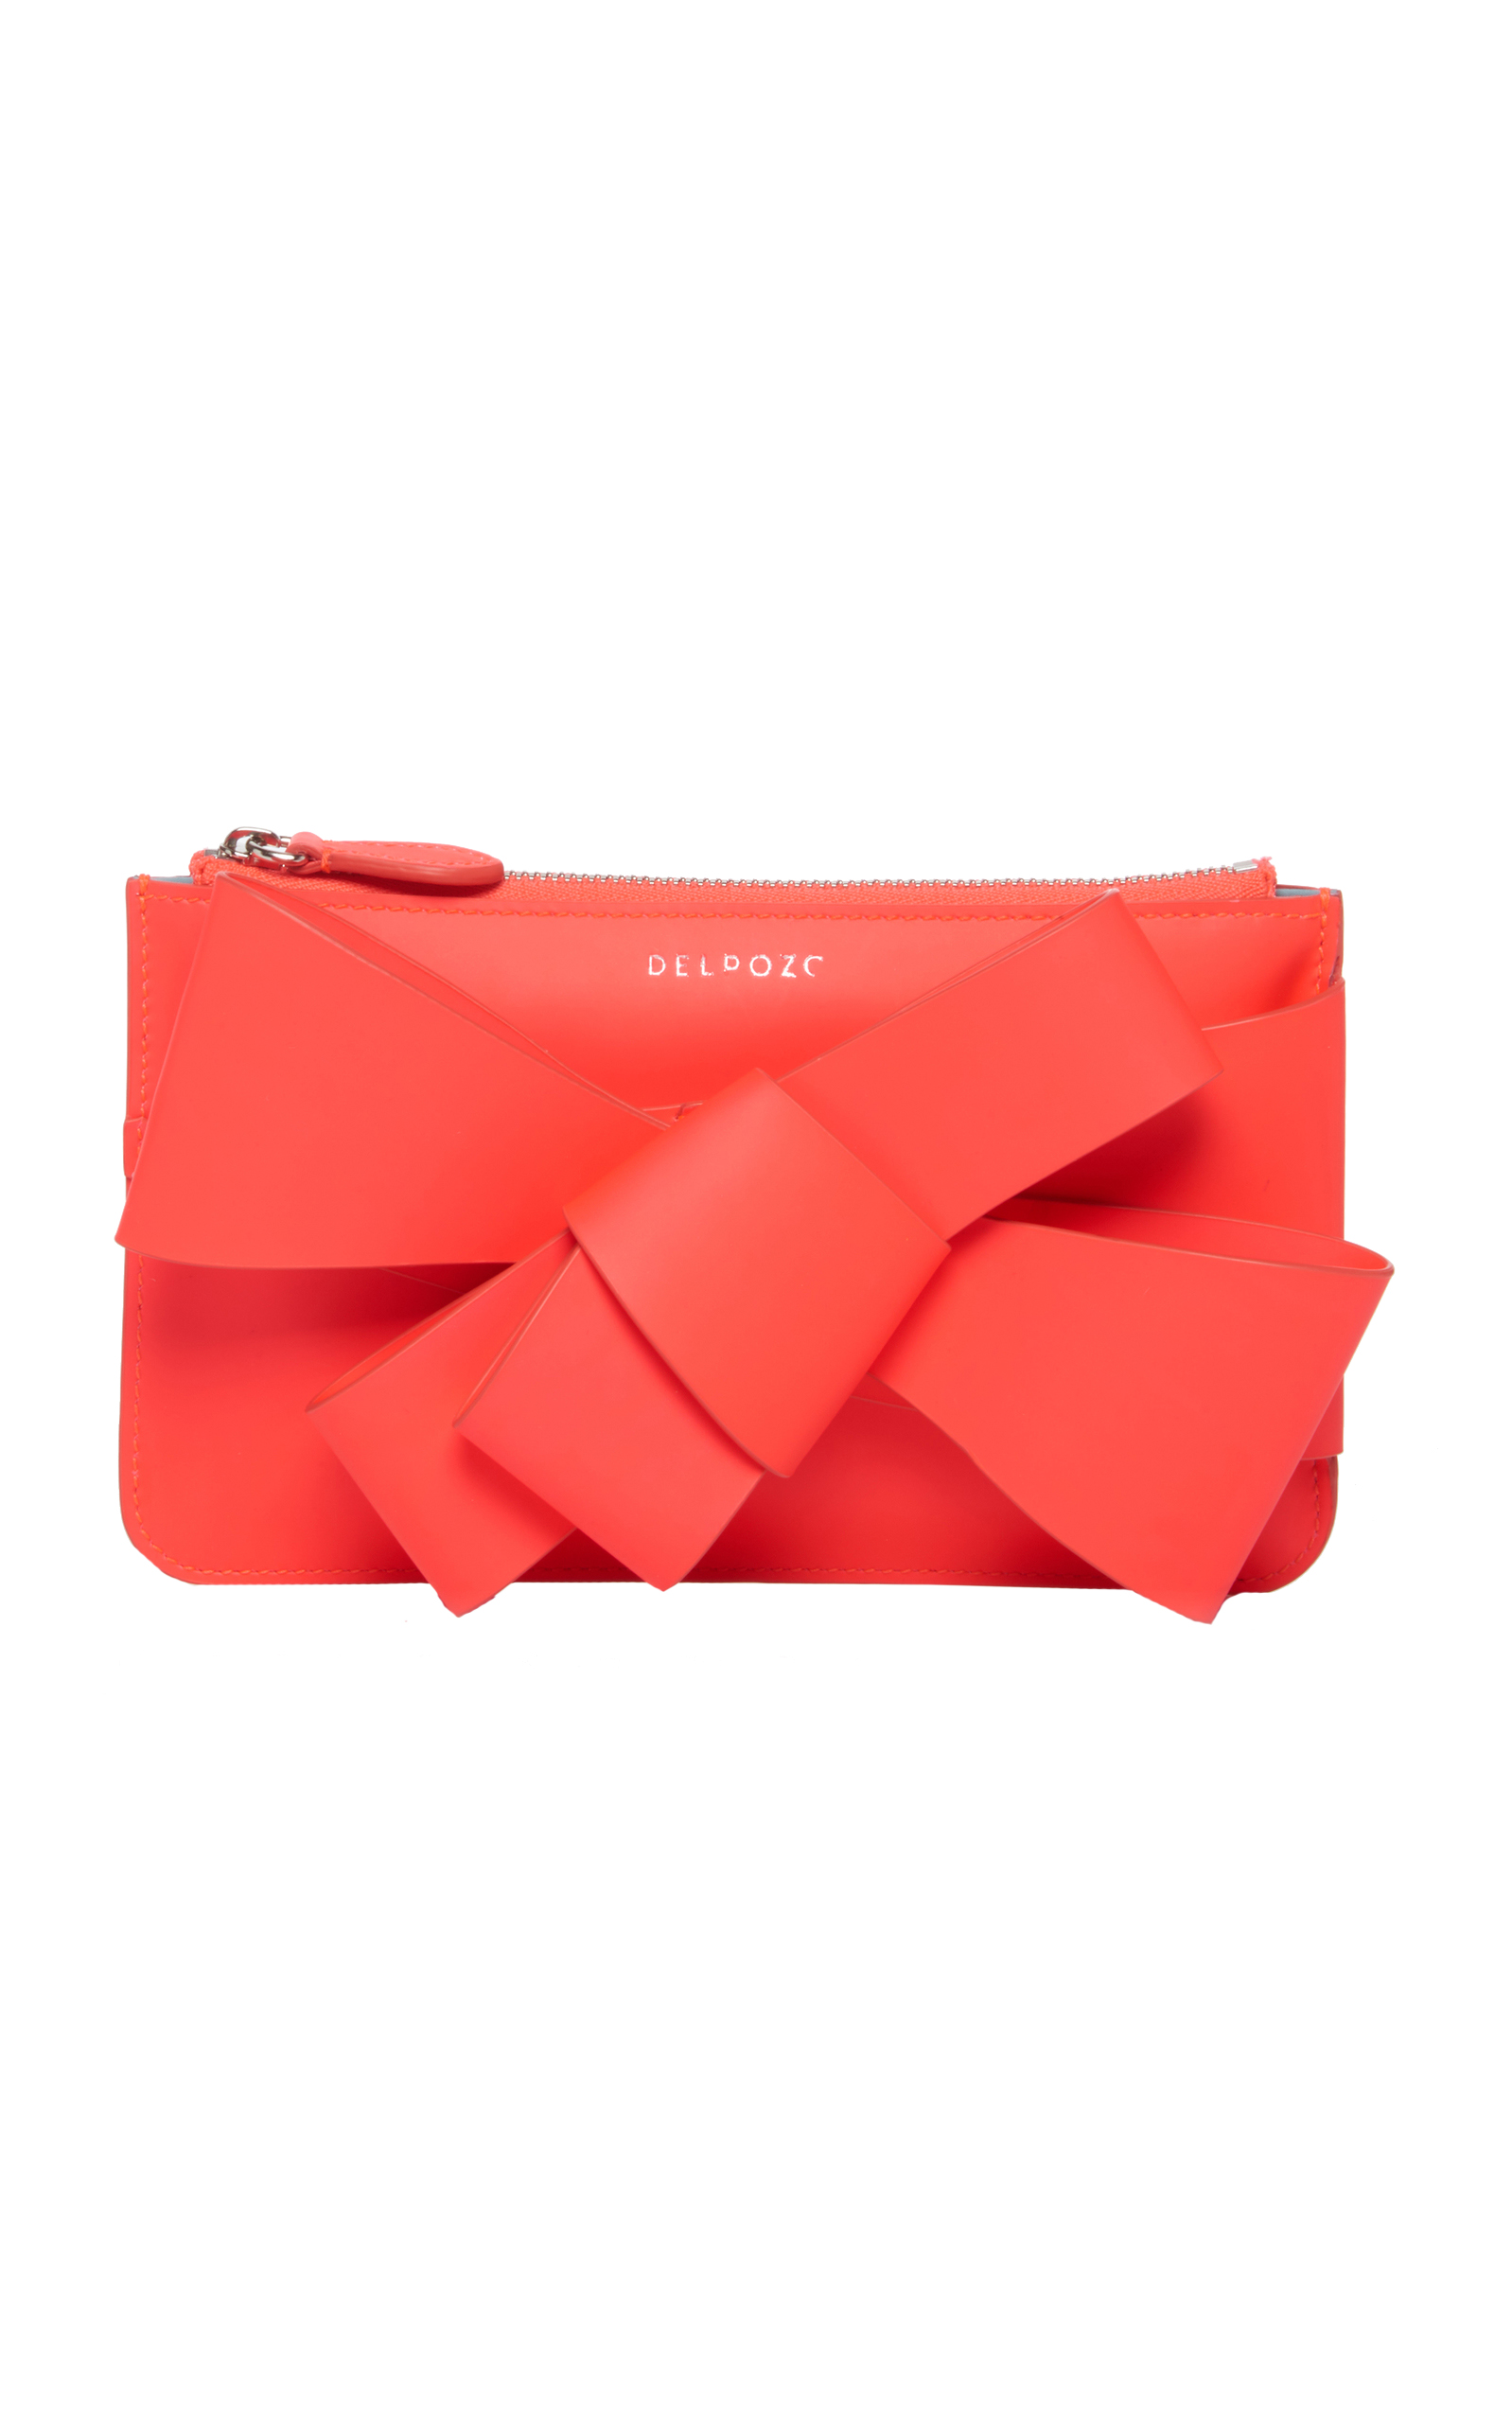 Julia is coveting the gorgeous  DelPozo Mini Bow Clutch from Moda Operandi  (in every colour of course!) because, well, girls just wanna have fu-un!